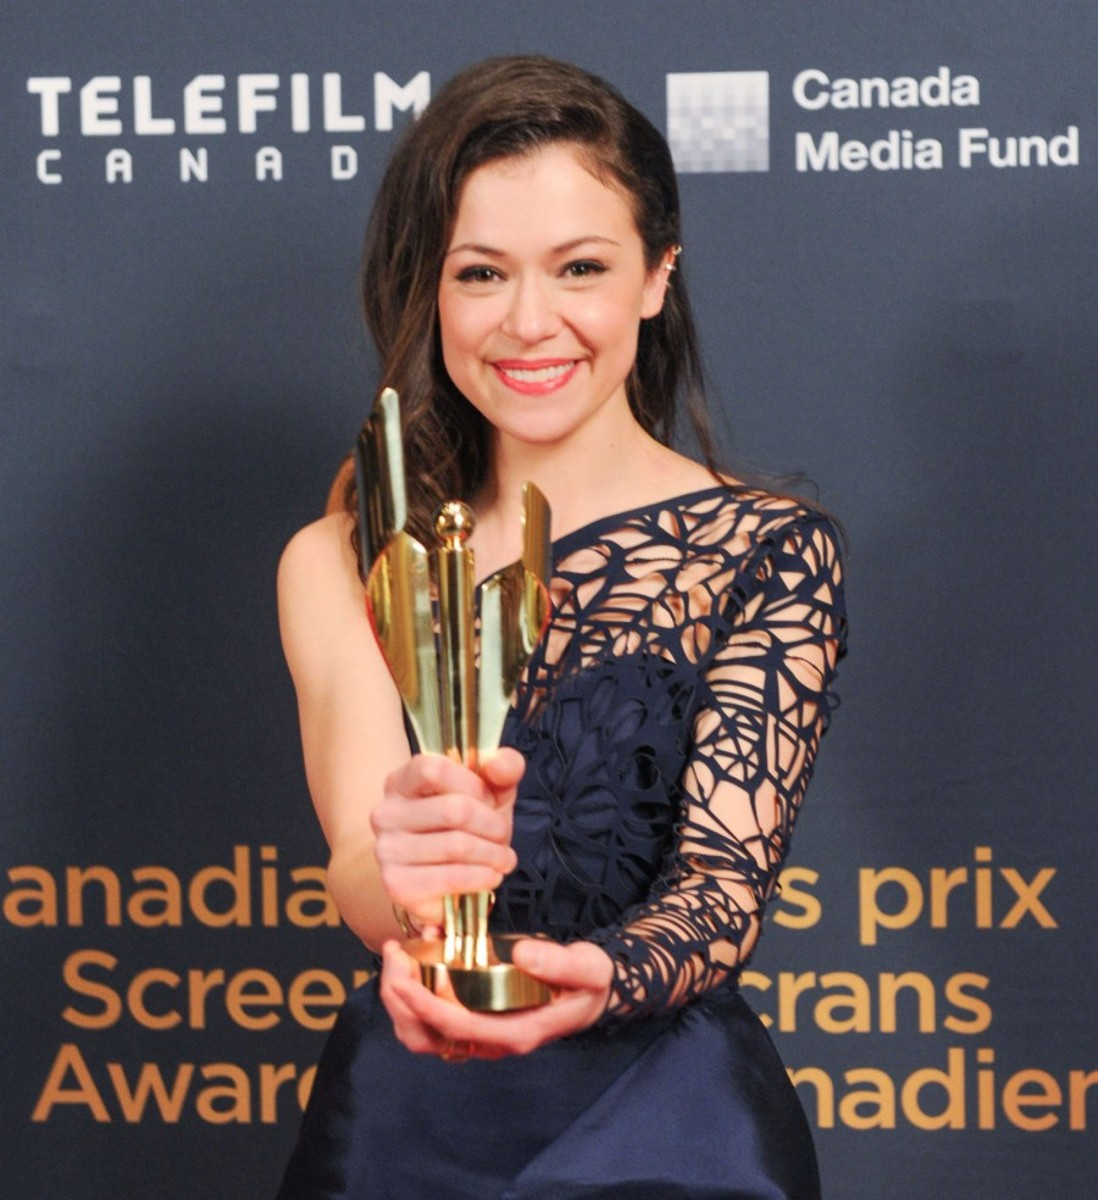 Tatiana Maslany with her Best Actress award at the 2015 Canadian Screen Awards